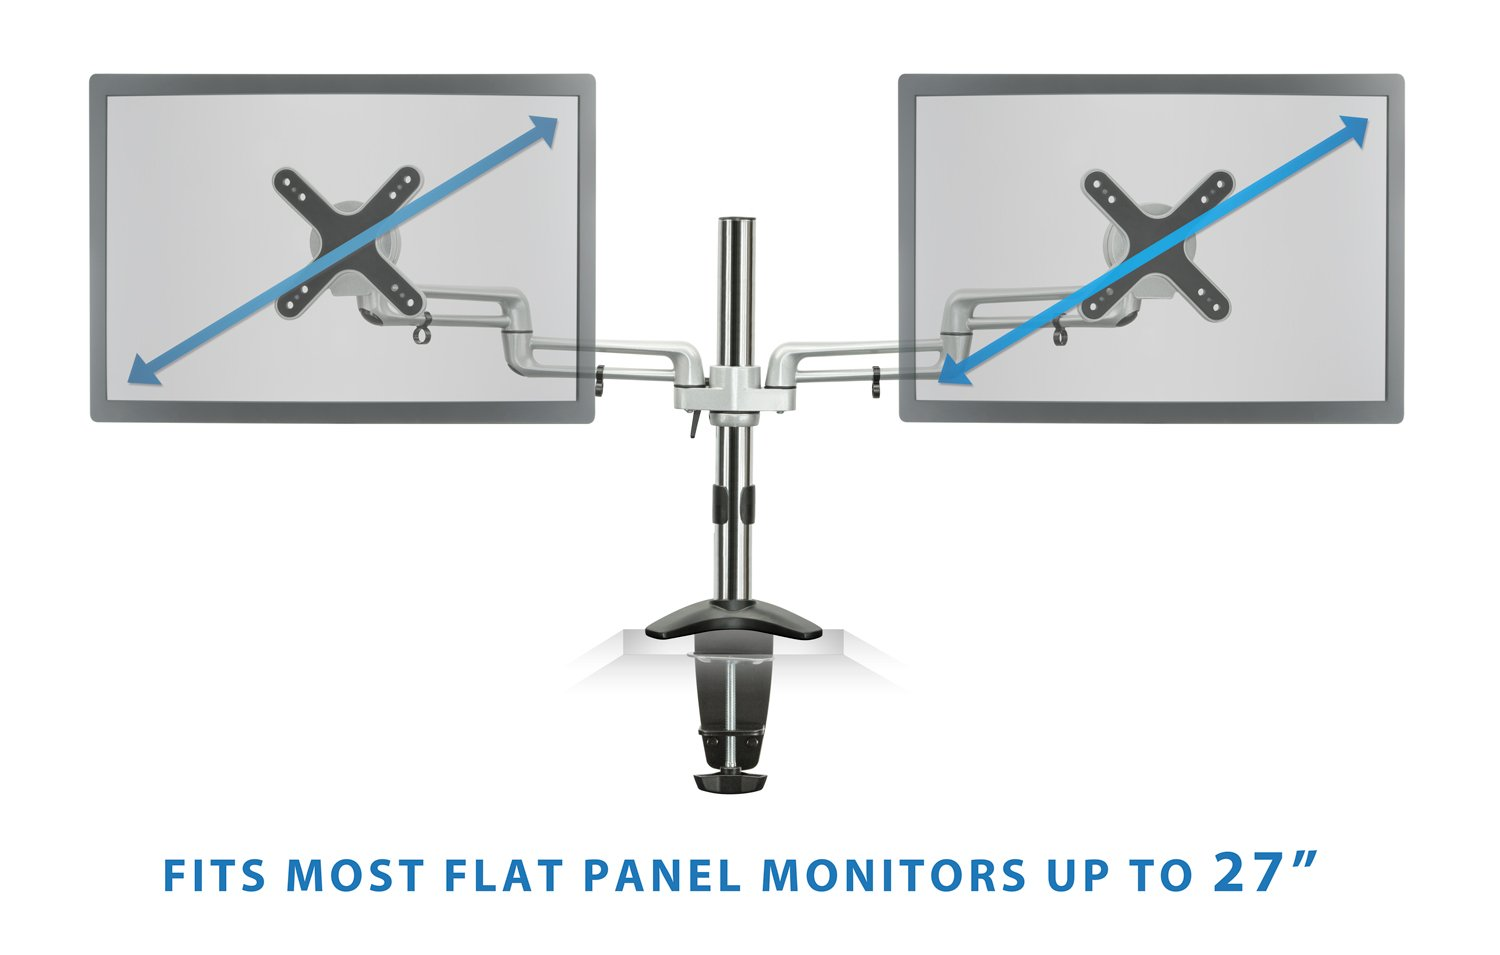 Mount-It! MI-732 Dual Monitor Office Desk Stand Mount Bracket with Clamp and Grommet Base for LCD LED Computer Monitors, Full-Motion Articulating Tilting 35.2 lbs Capacity, Up to 27 inch Black/Silver by Mount-It! (Image #3)